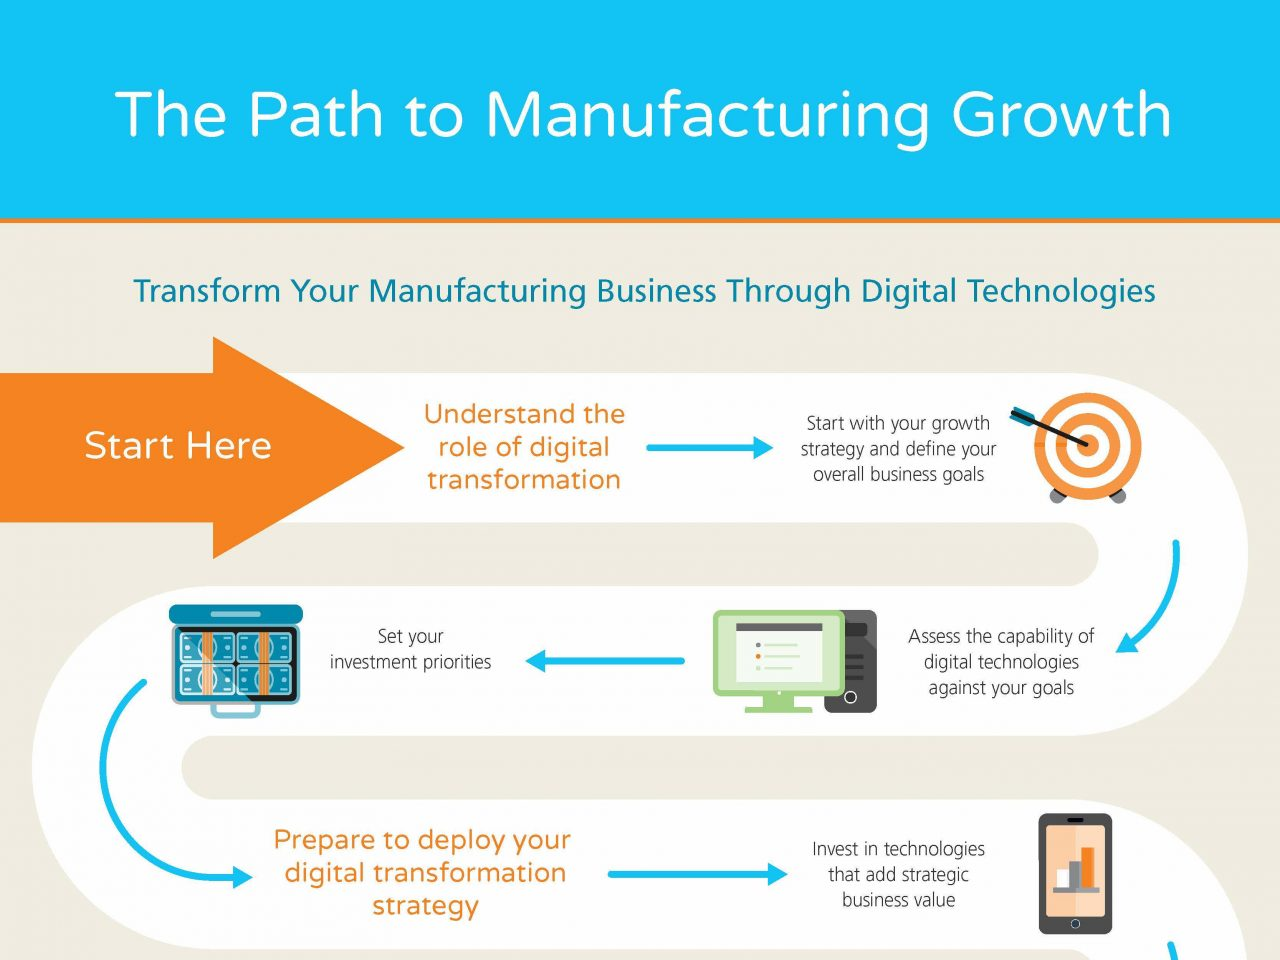 Epicor-Mfg-Path-to-Growth-featured-image-1280x960.jpg